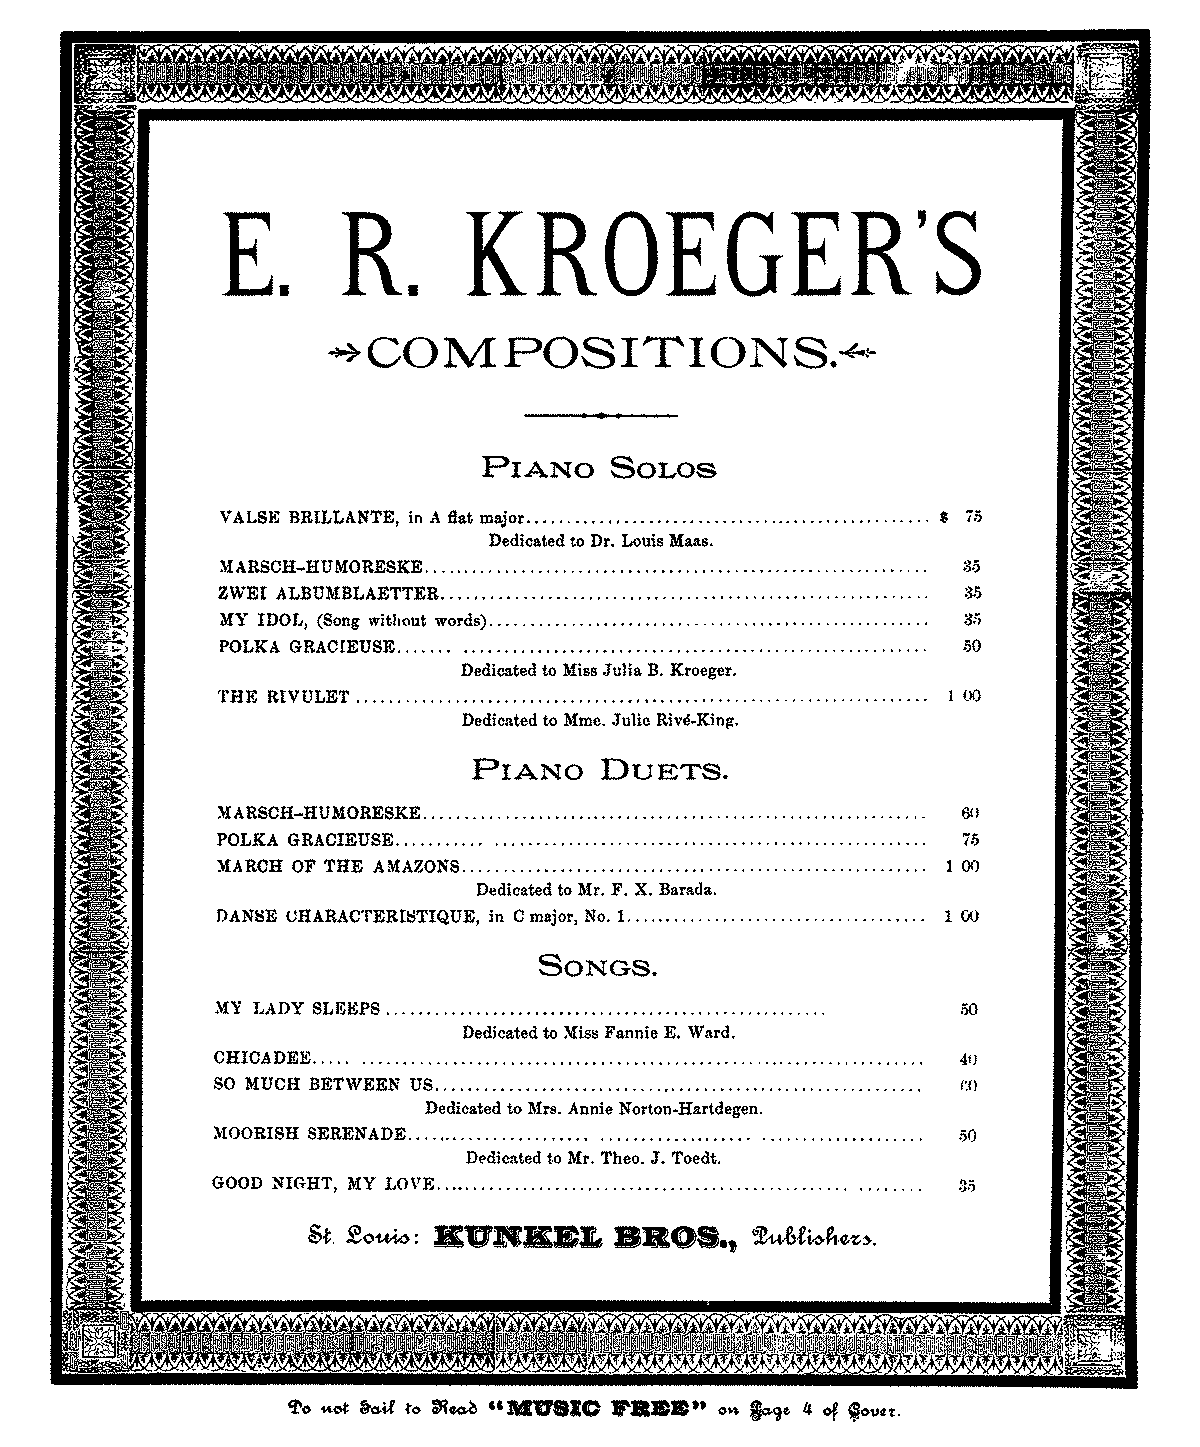 PMLP513869-ERKroeger March of the Amazons.pdf